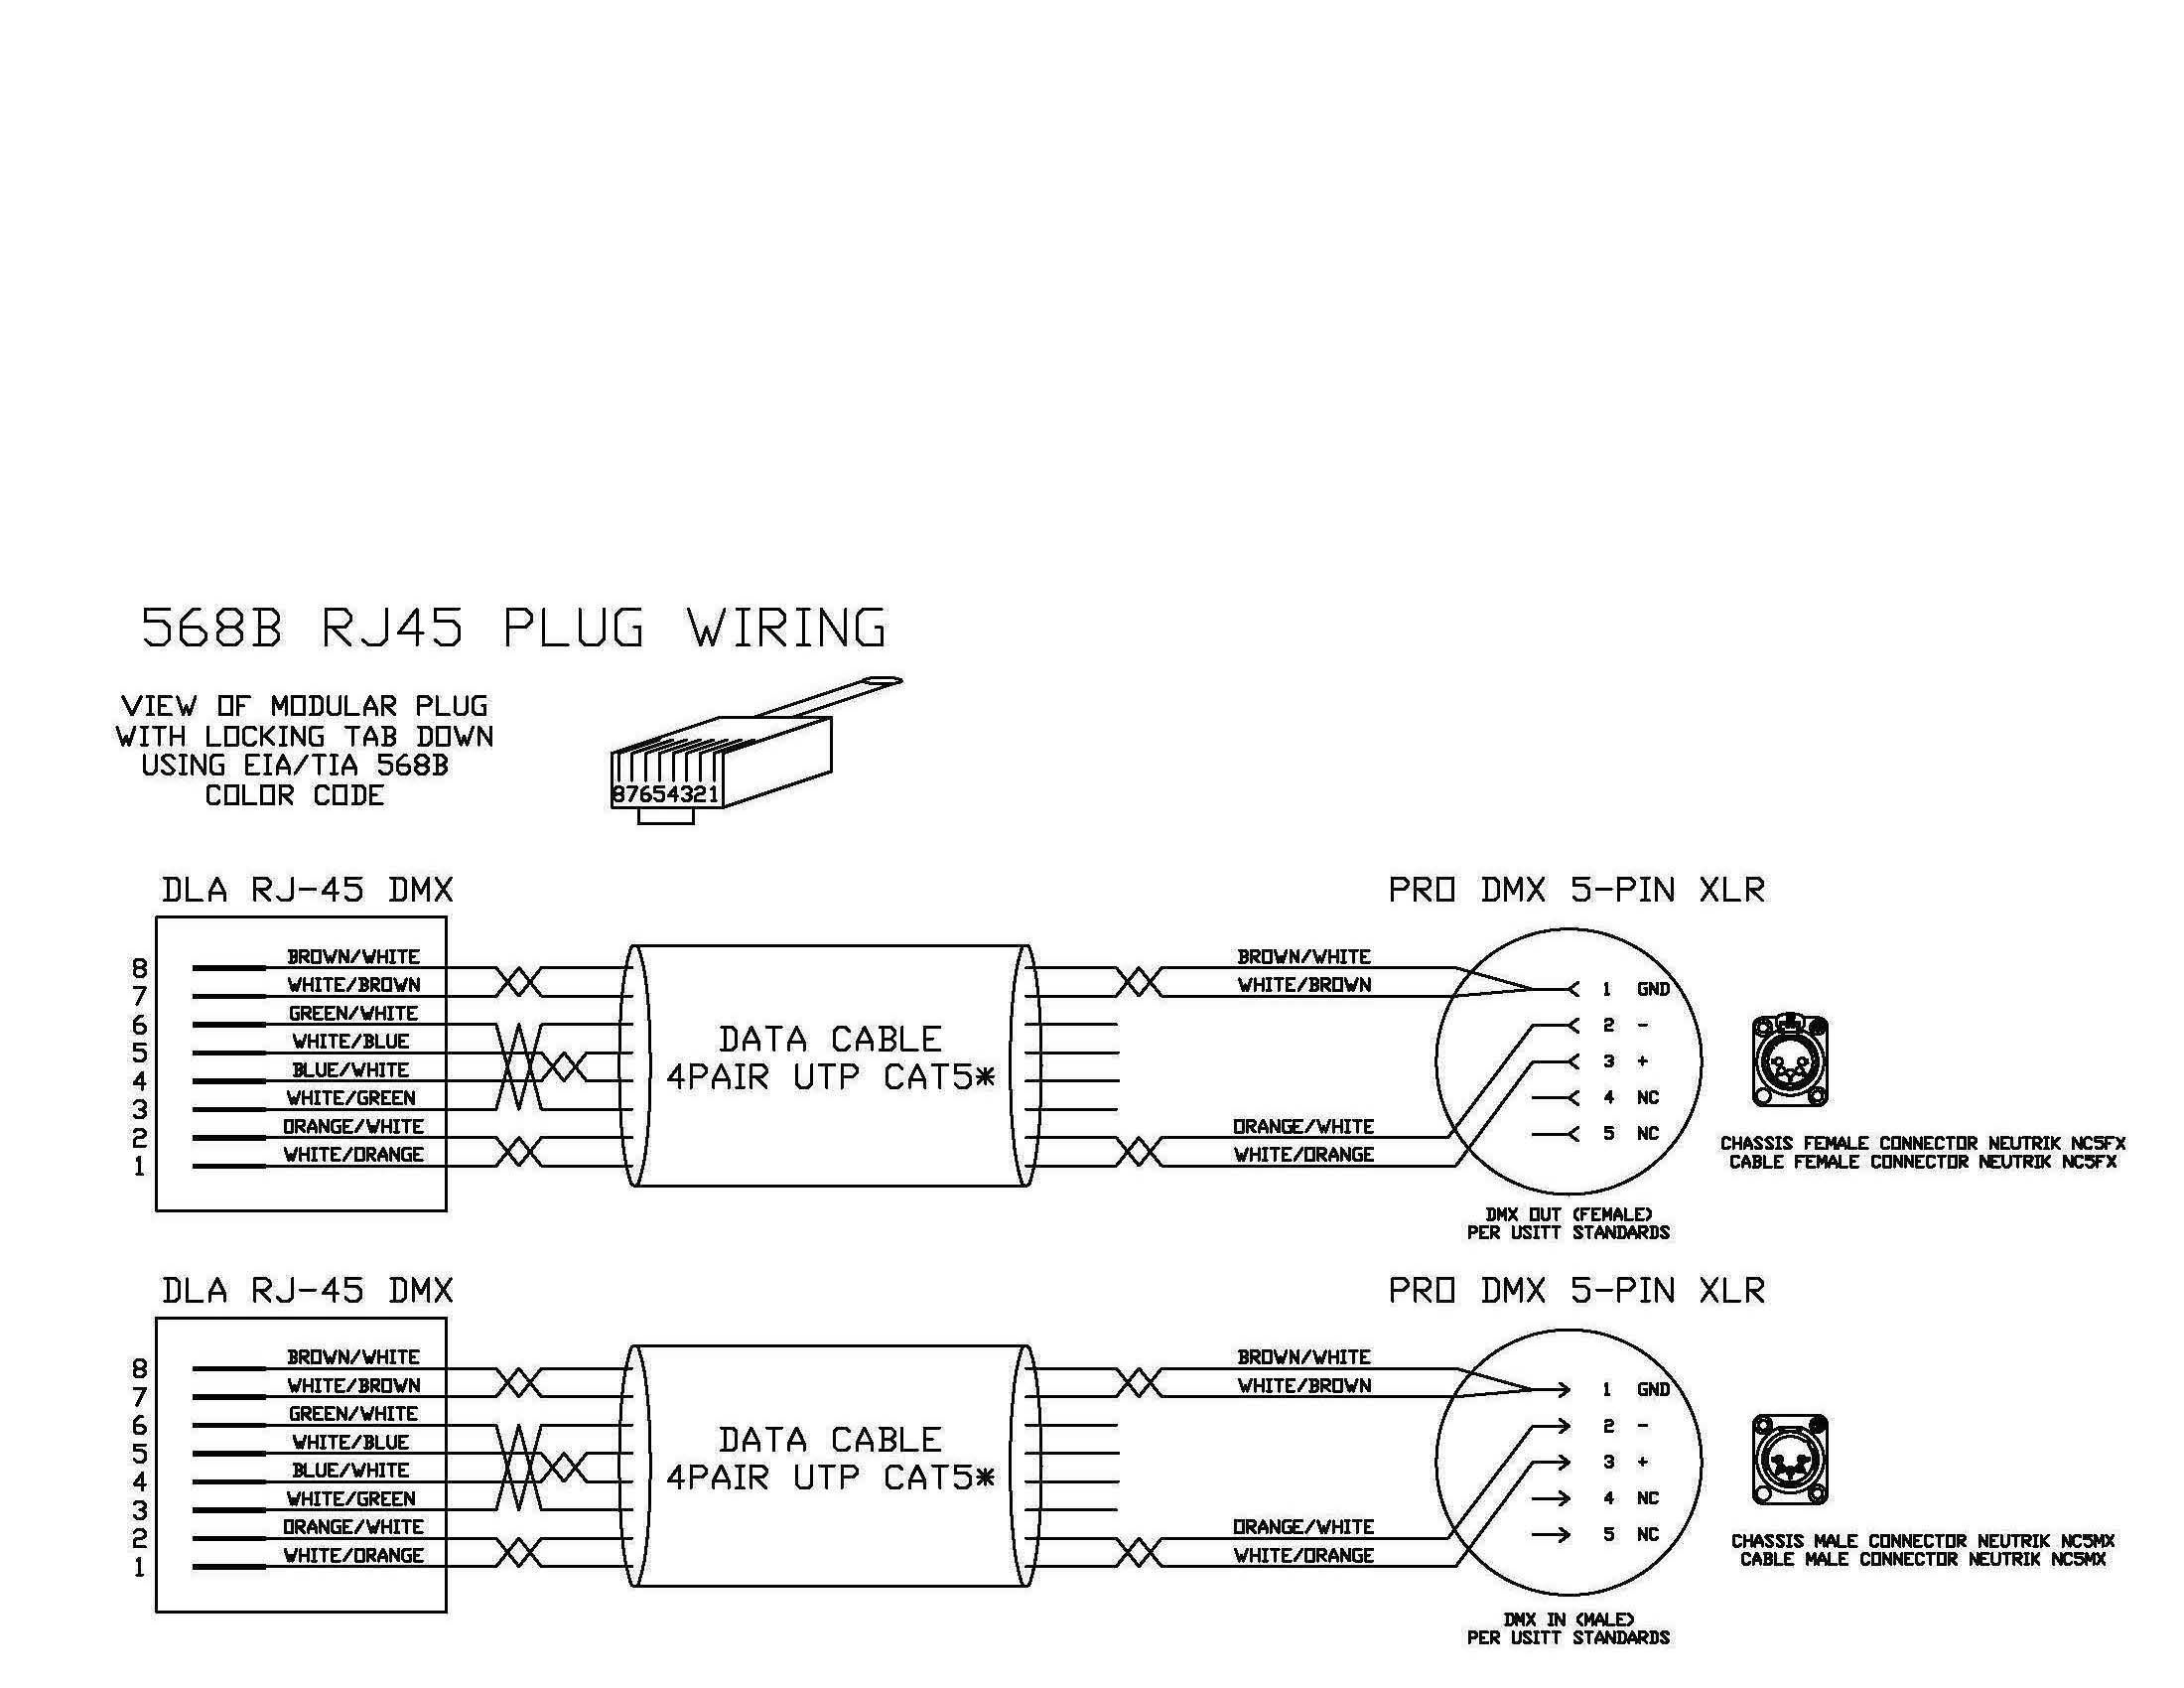 Dmx To Rj45 Wiring Diagram - Wiring Data Diagram - Usb To Dmx Wiring Diagram